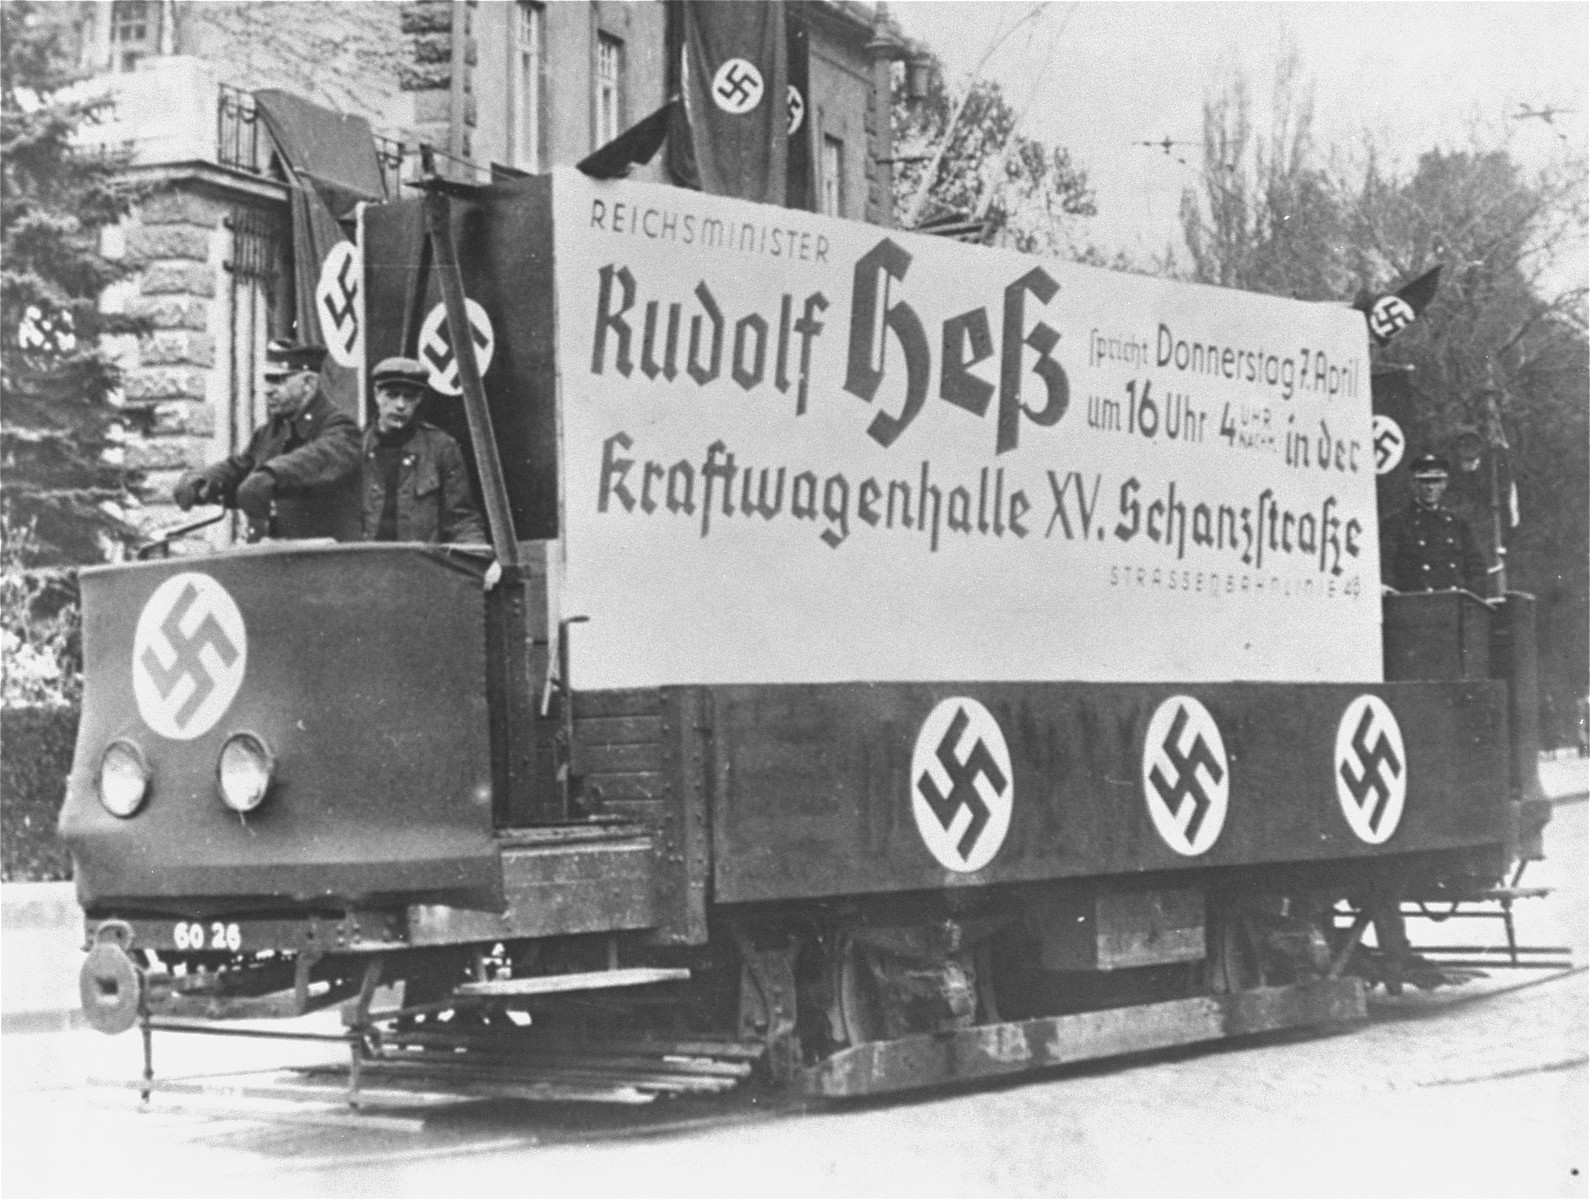 A streetcar adorned with swastikas and a large sign advertising a speech to be delivered by Reichsminister Rudoph Hess on April 7, 1938, in support of the Anschluss.